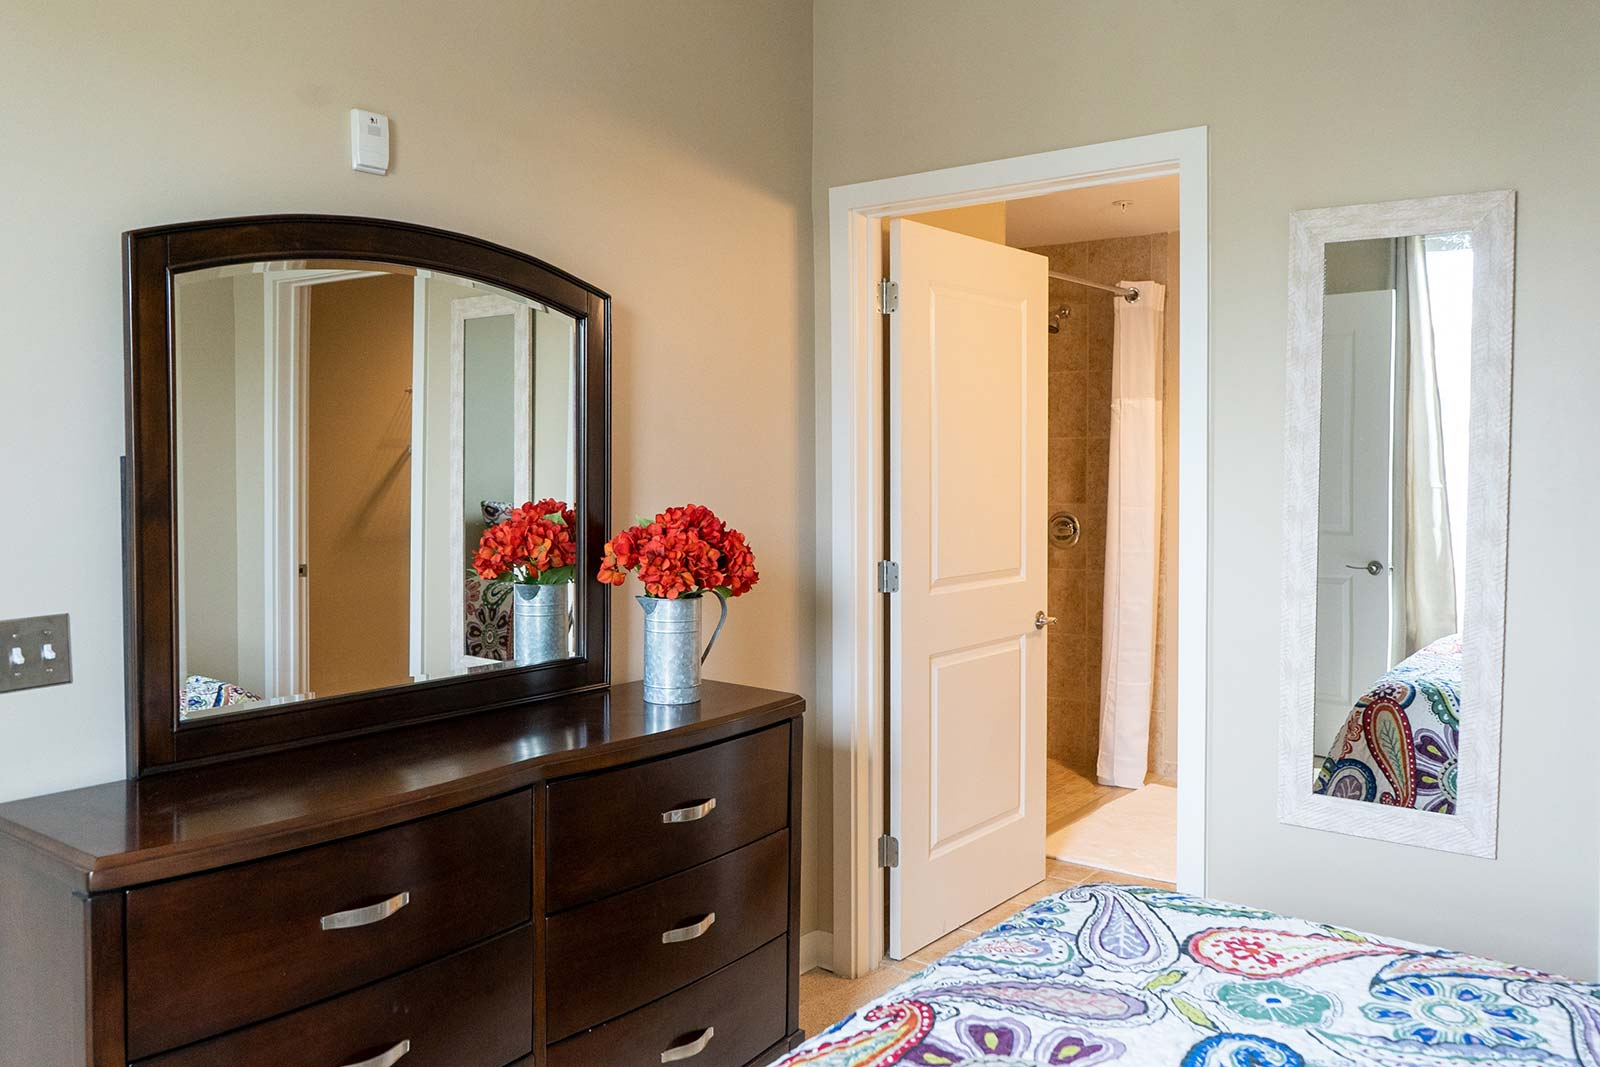 Assisted living apartment bedroom at The Arbors of Gulf Breeze in Gulf Breeze, FL